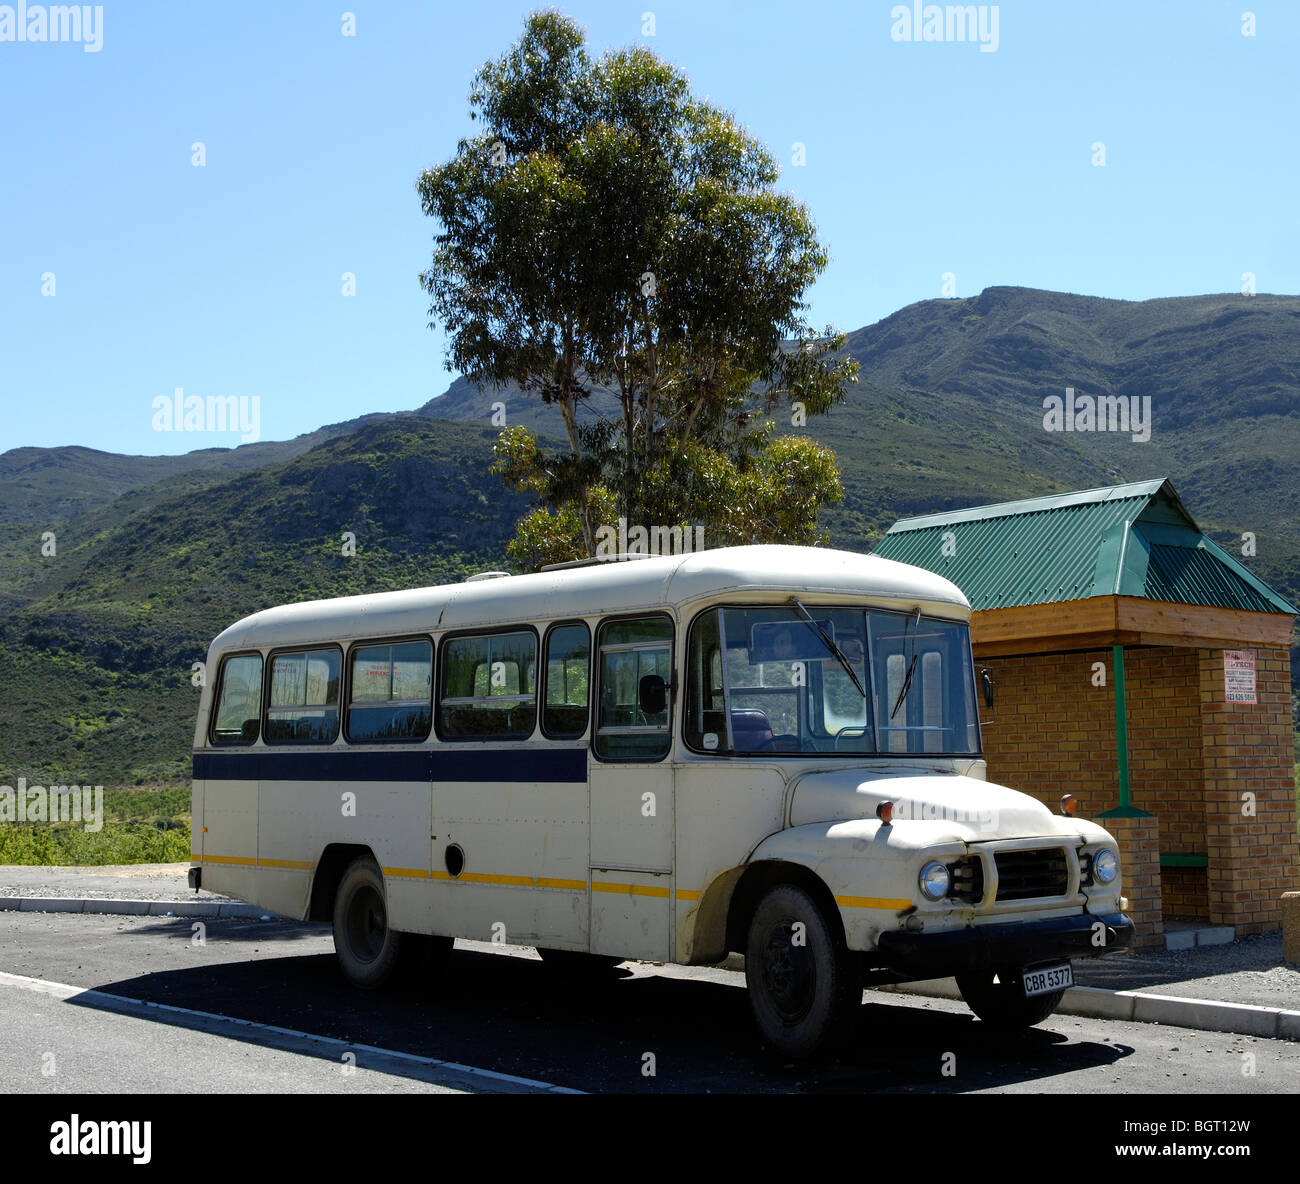 Empty School Bus, Western Cape, South Africa, Africa Stock